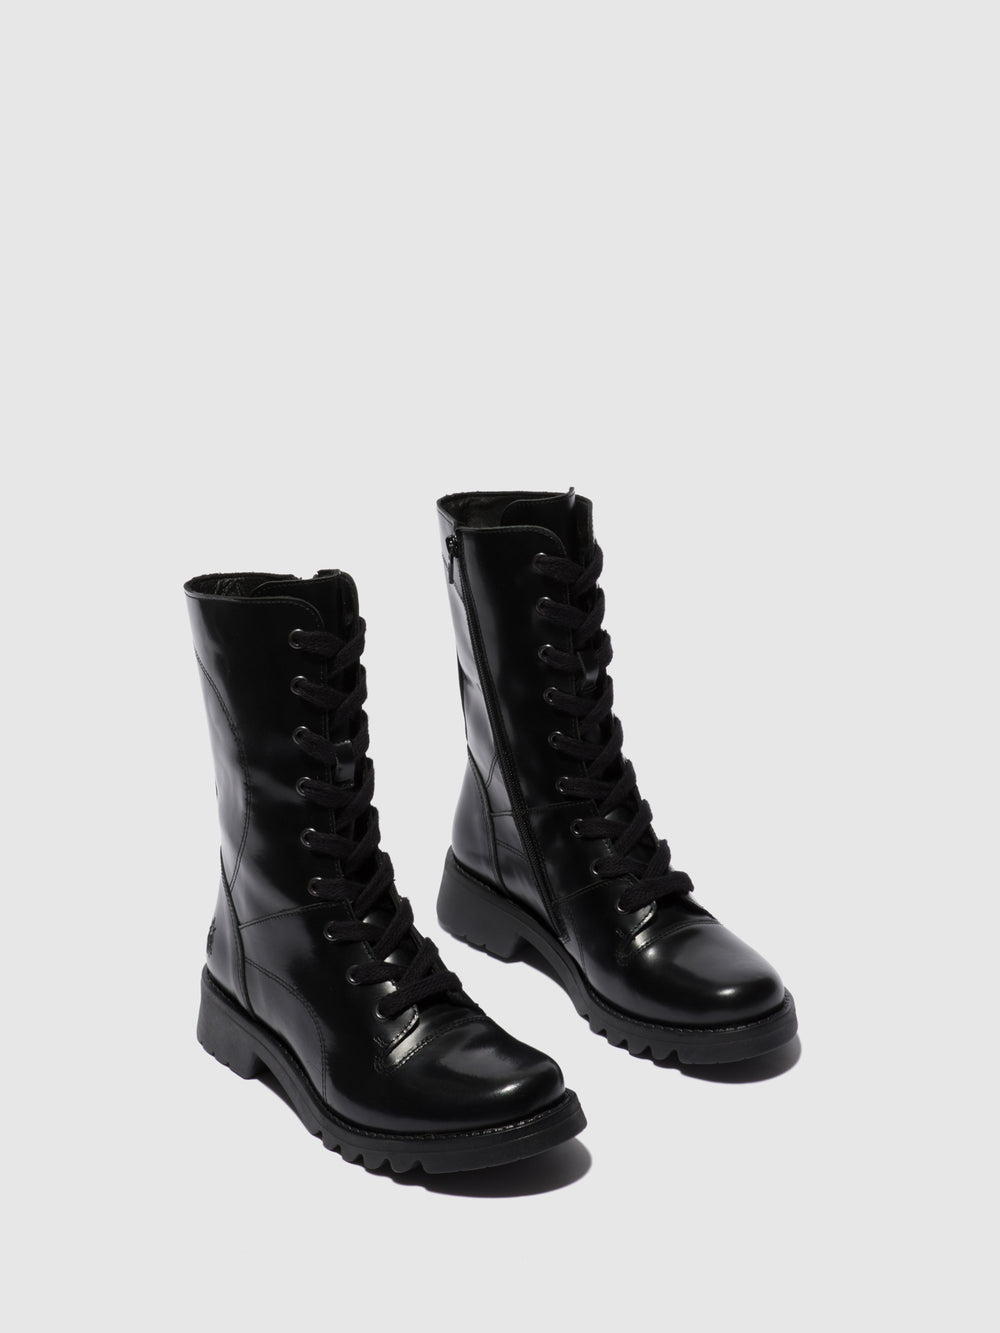 Lace-up Boots REBA640FLY GLASS BLACK